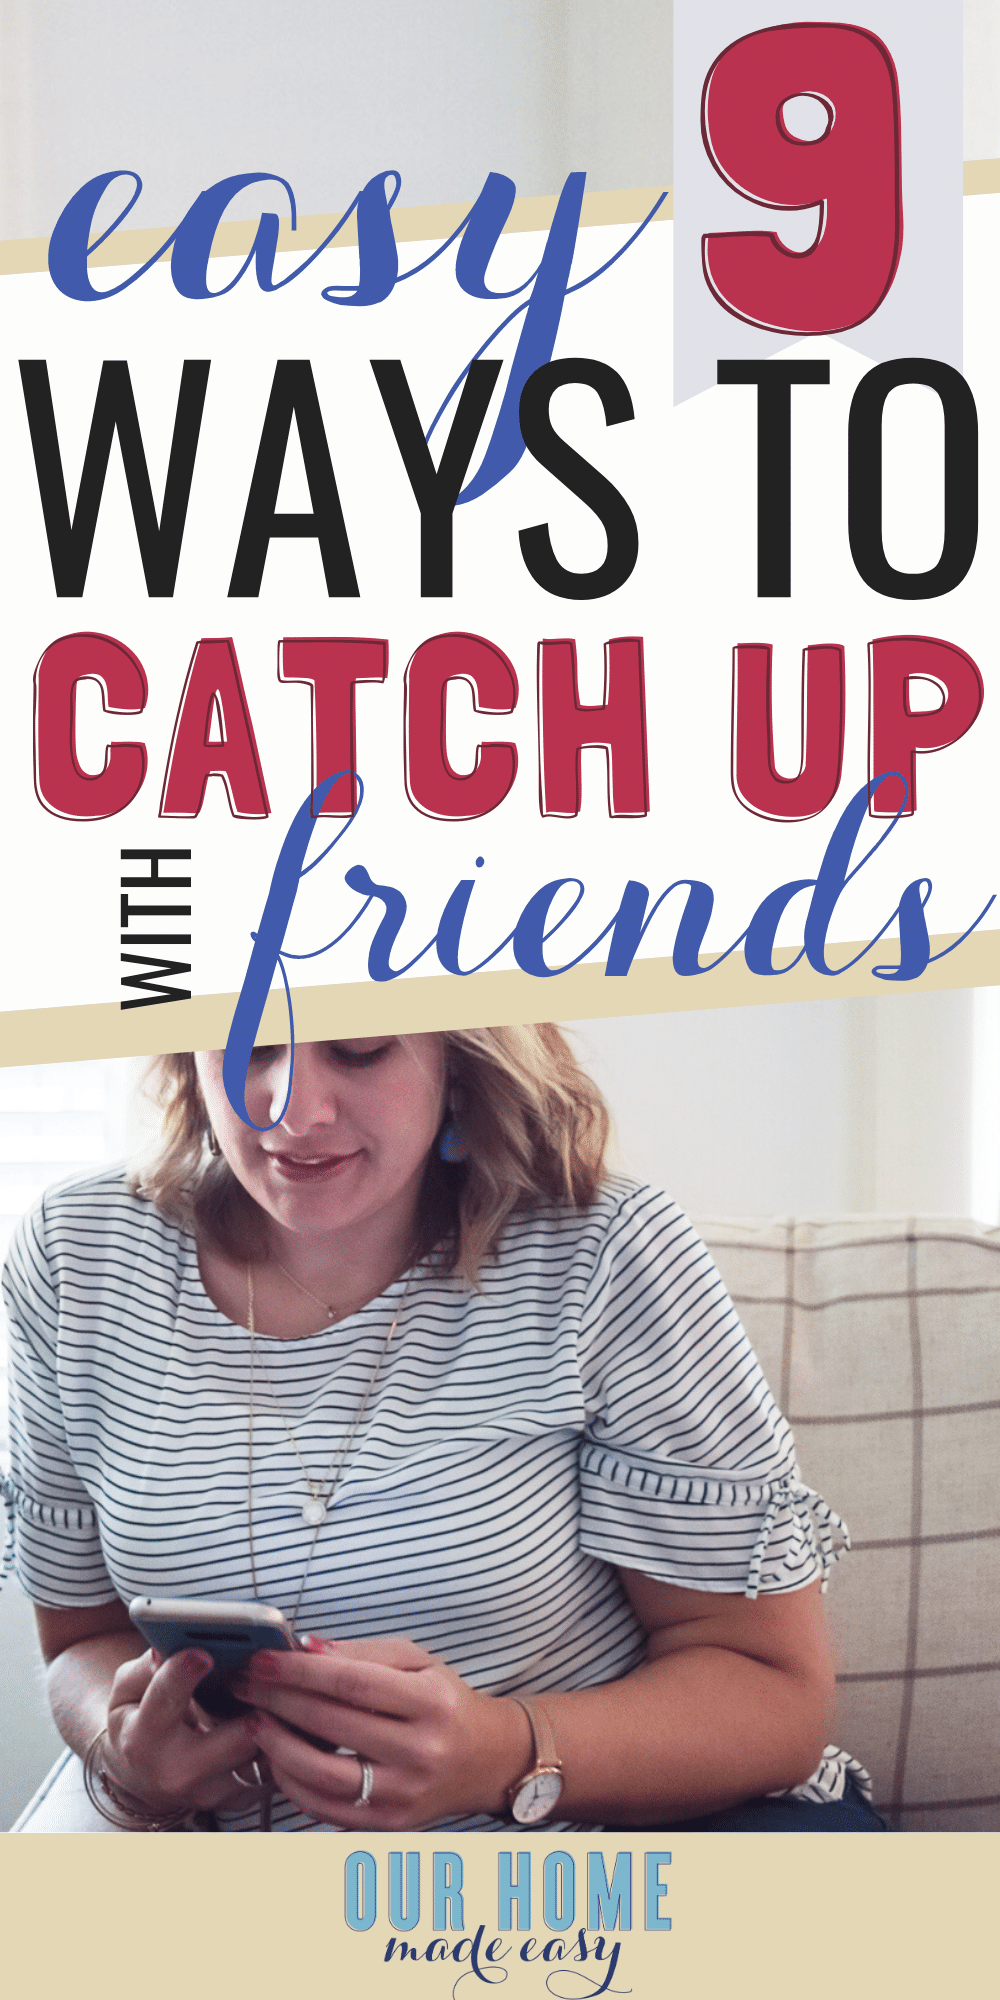 Has it been a while since you had a great time with your friends? Use these ideas on ways to catch up with old friends to make it a new habit that you enjoy!